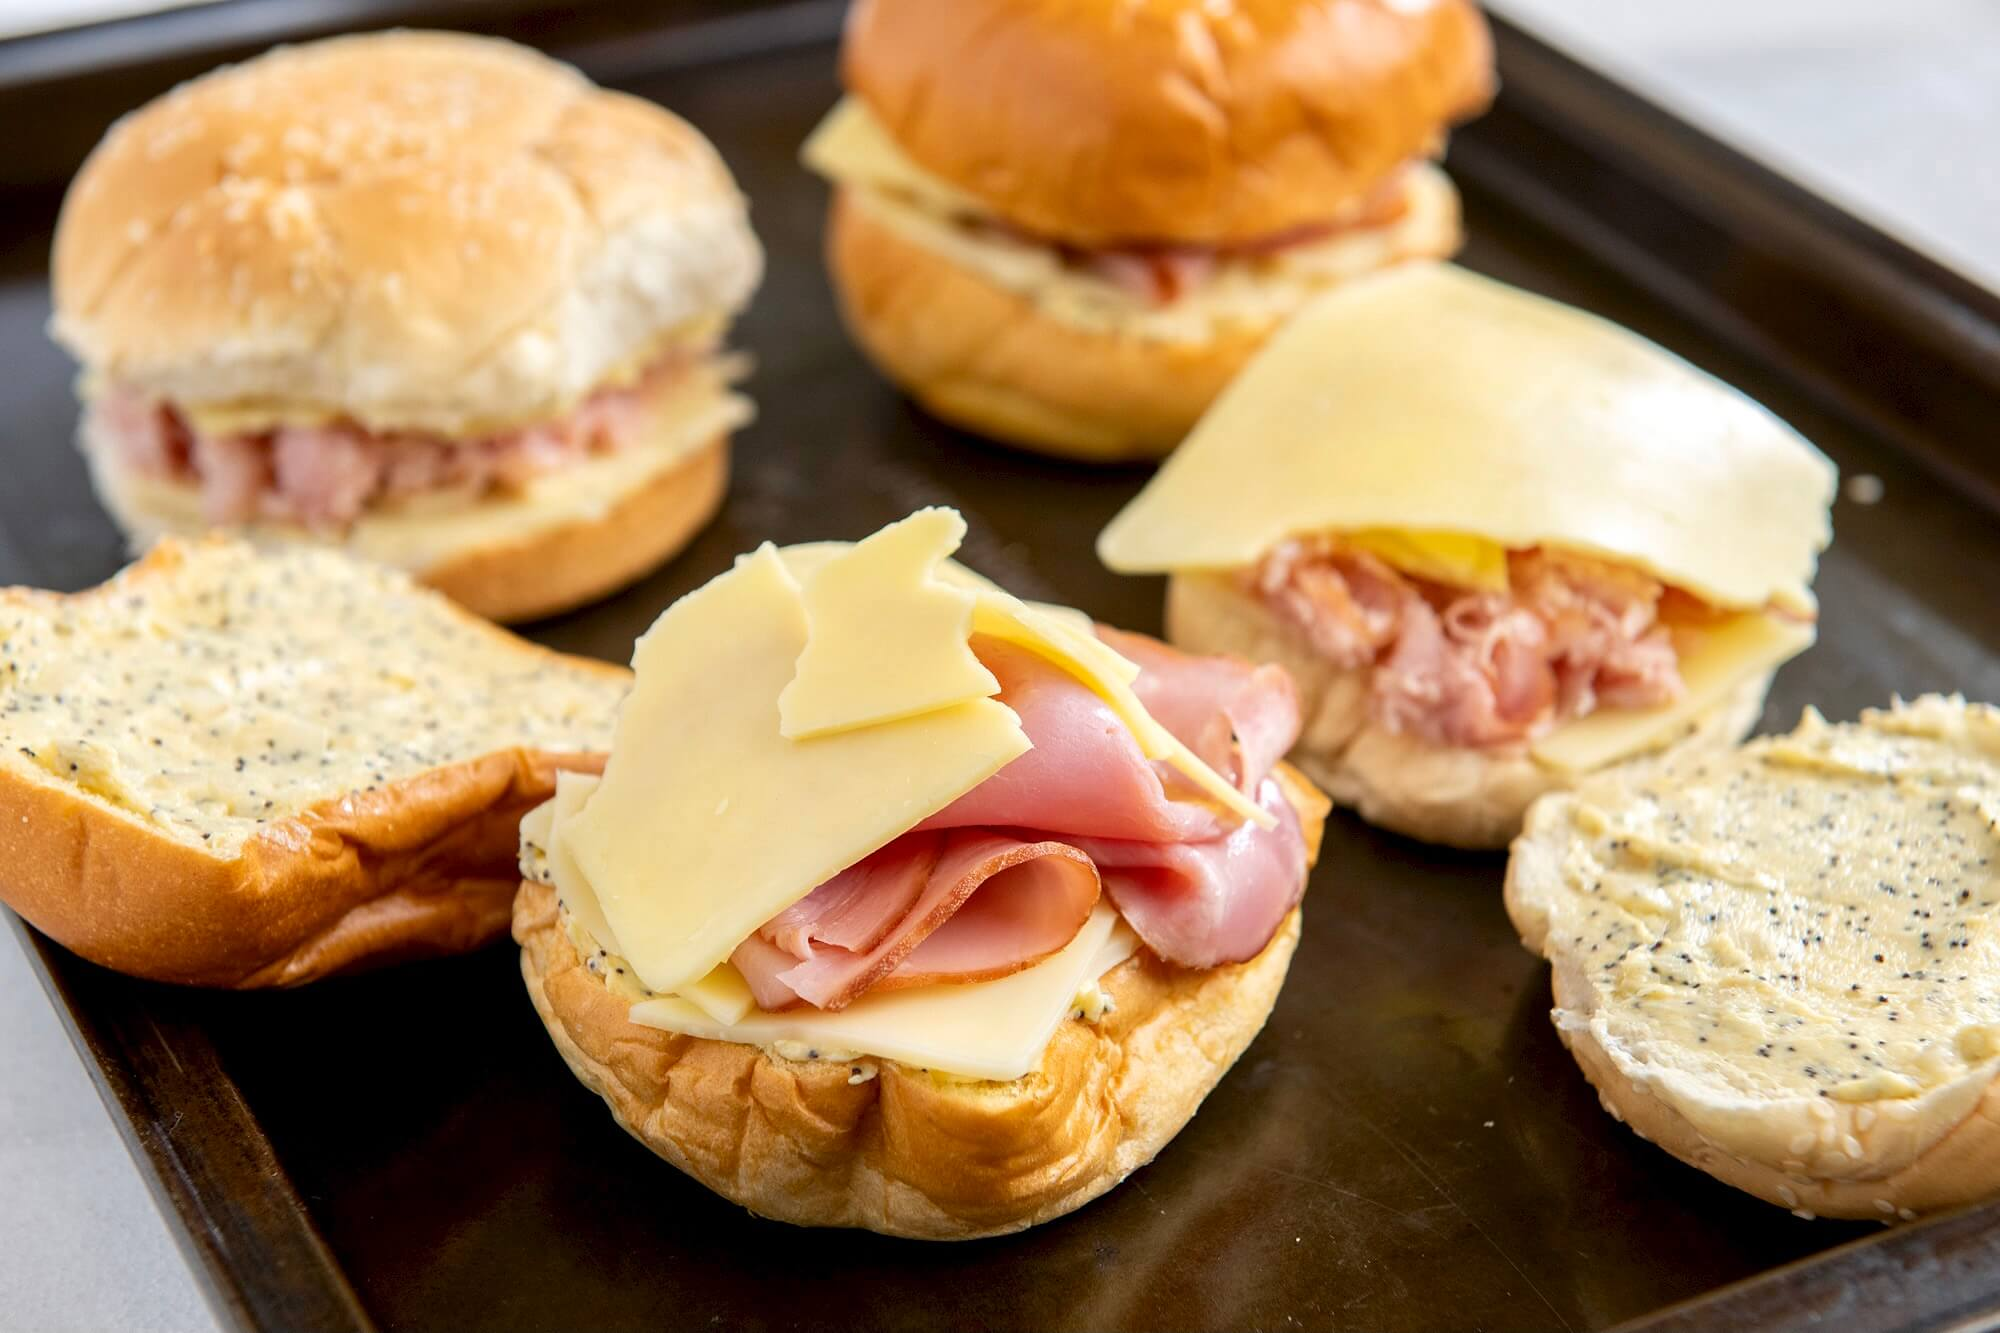 The classic ham sandwich is redefined with two kinds of cheese, a flavorful spread, and a quick trip to the oven. These toasty bunwiches are easy to make-ahead and as well suited to casual entertaining as they are to a quick weeknight meal with a side of soup!